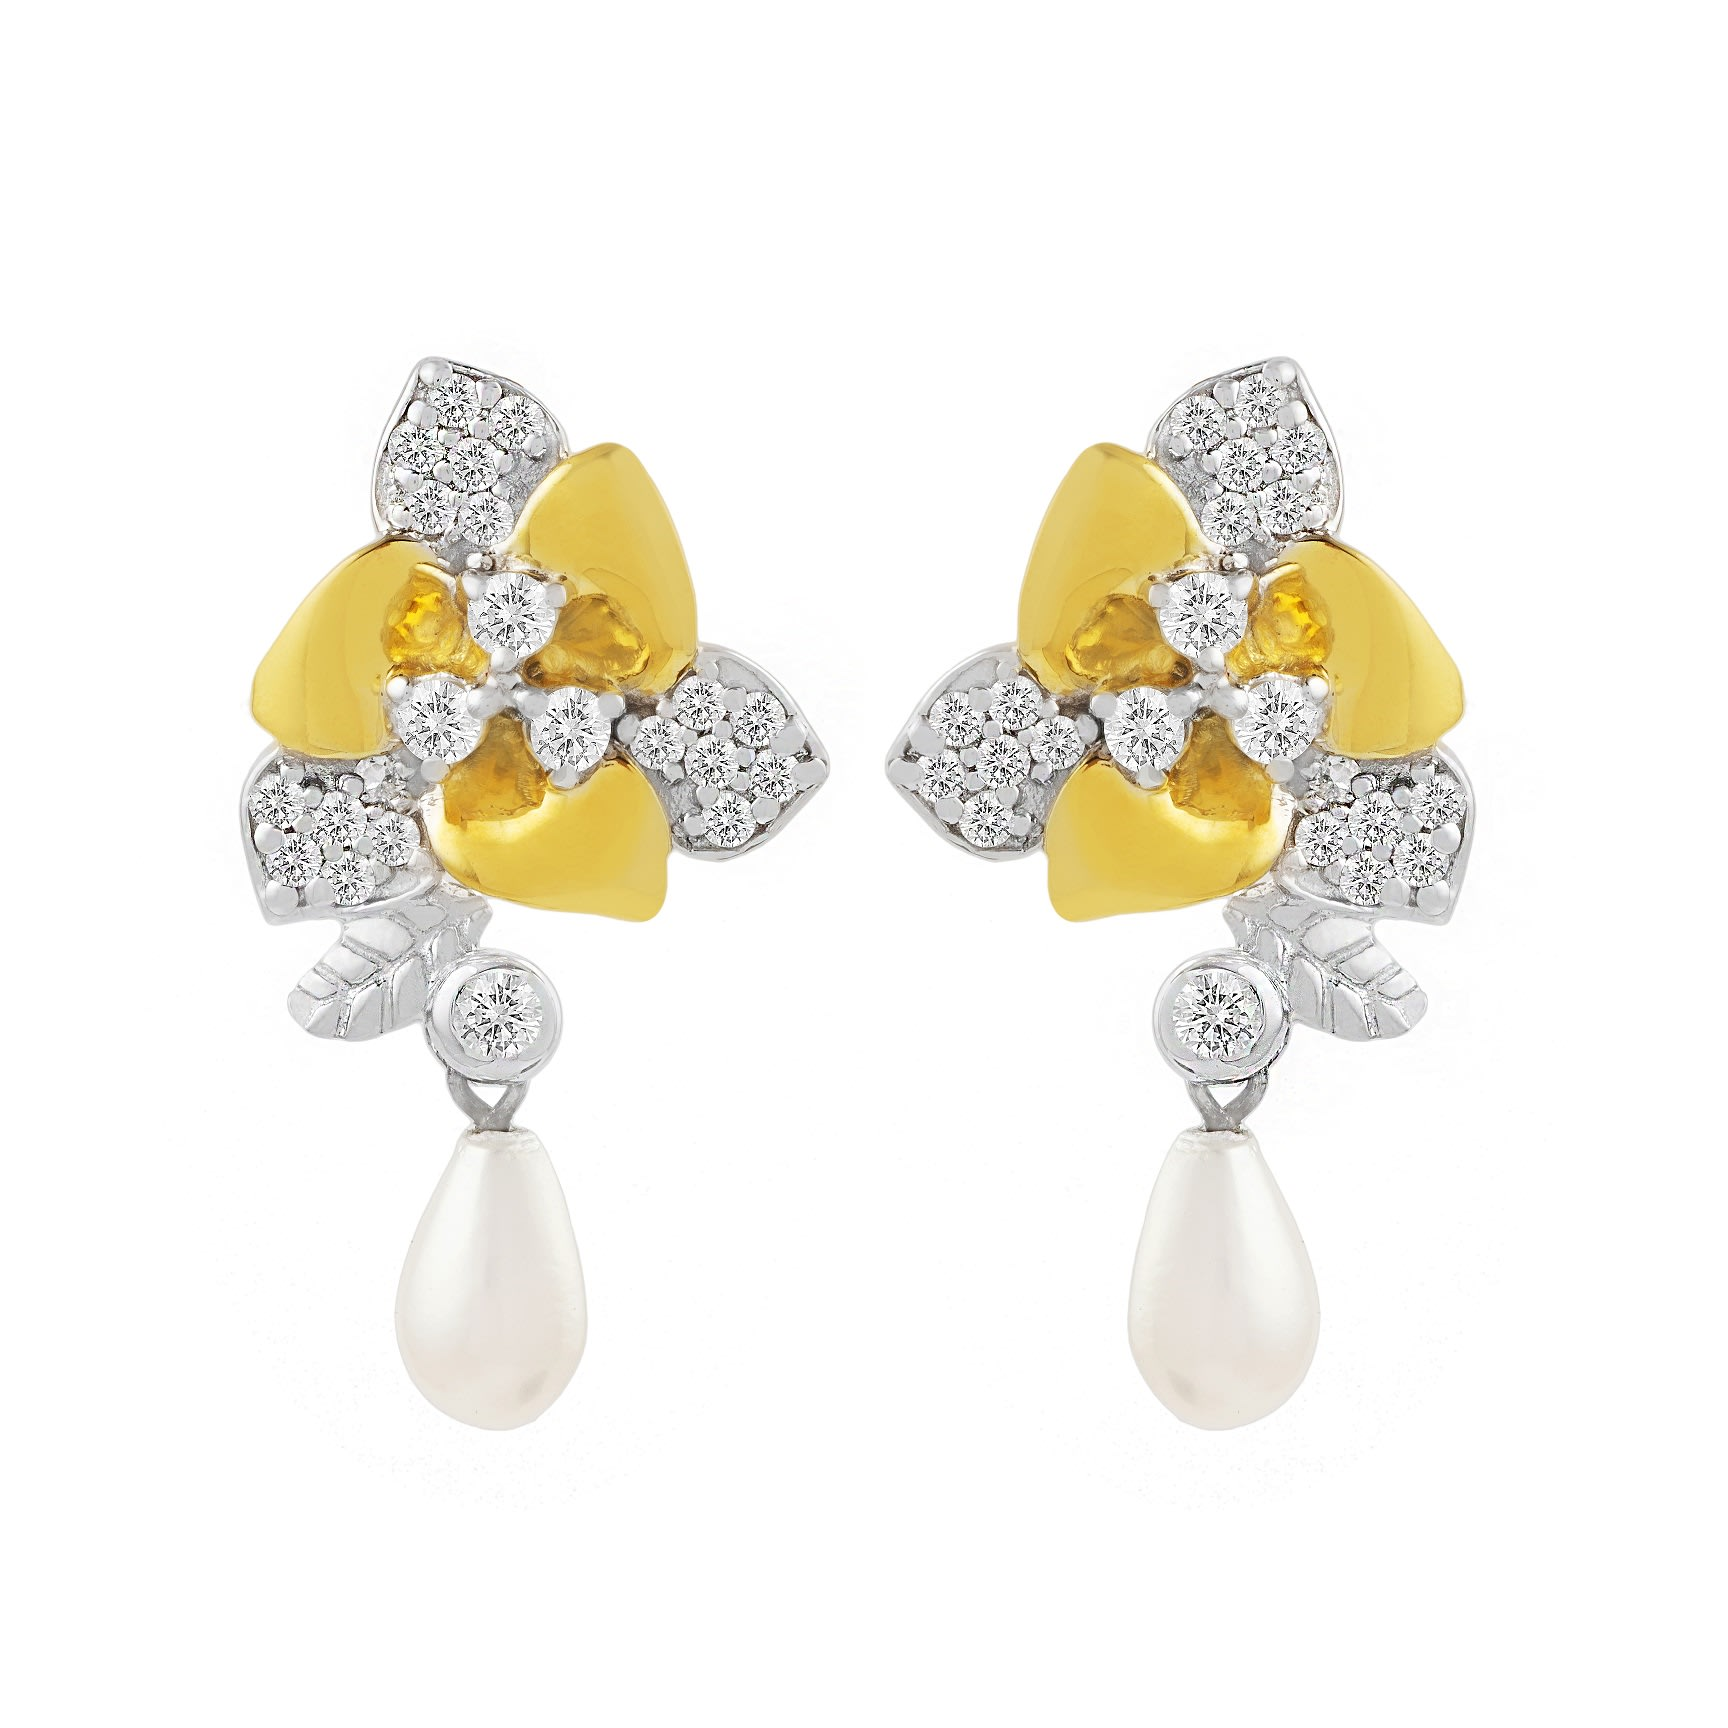 floral-earrings-by-allure-available-at-velvetcase-com